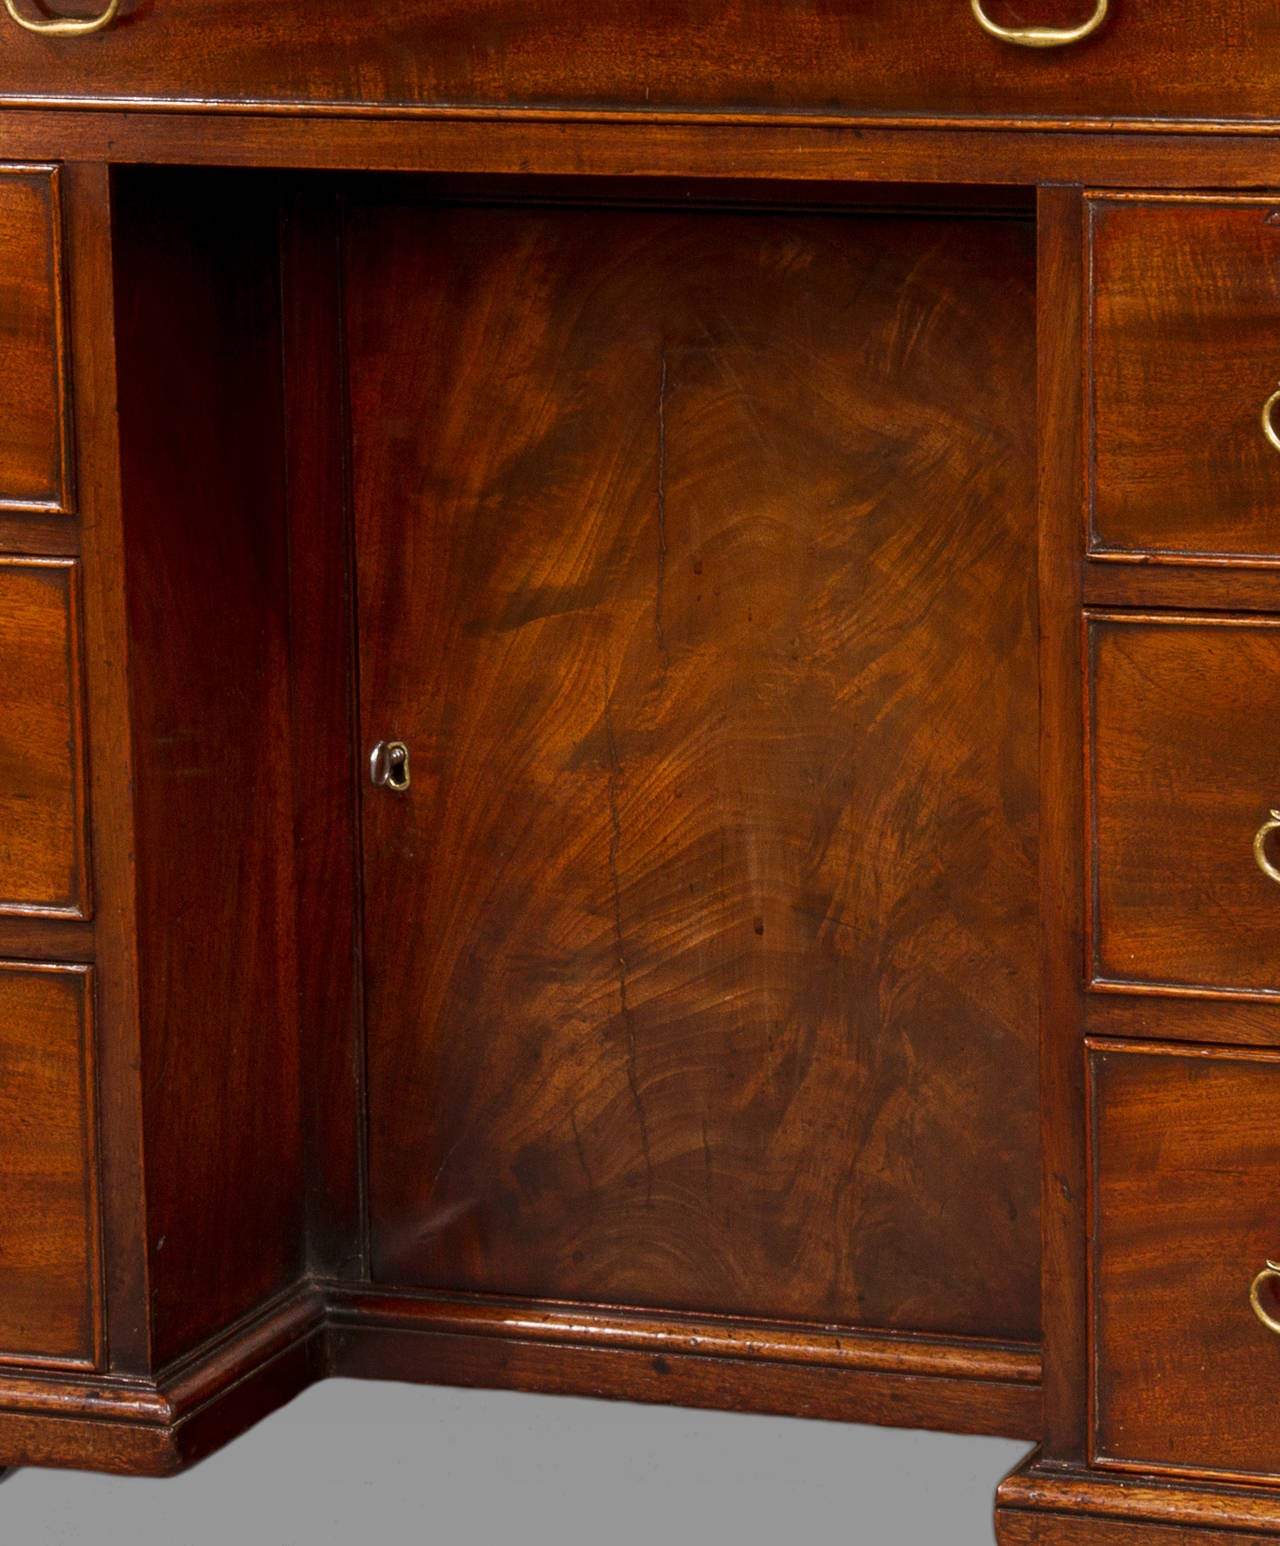 With one long drawer to the frieze over two columns of three short draws with a recessed cupboard between ending in the original bracket feet. This small desk is of excellent quality and craftsmanship constructed of well figured dense Cuban